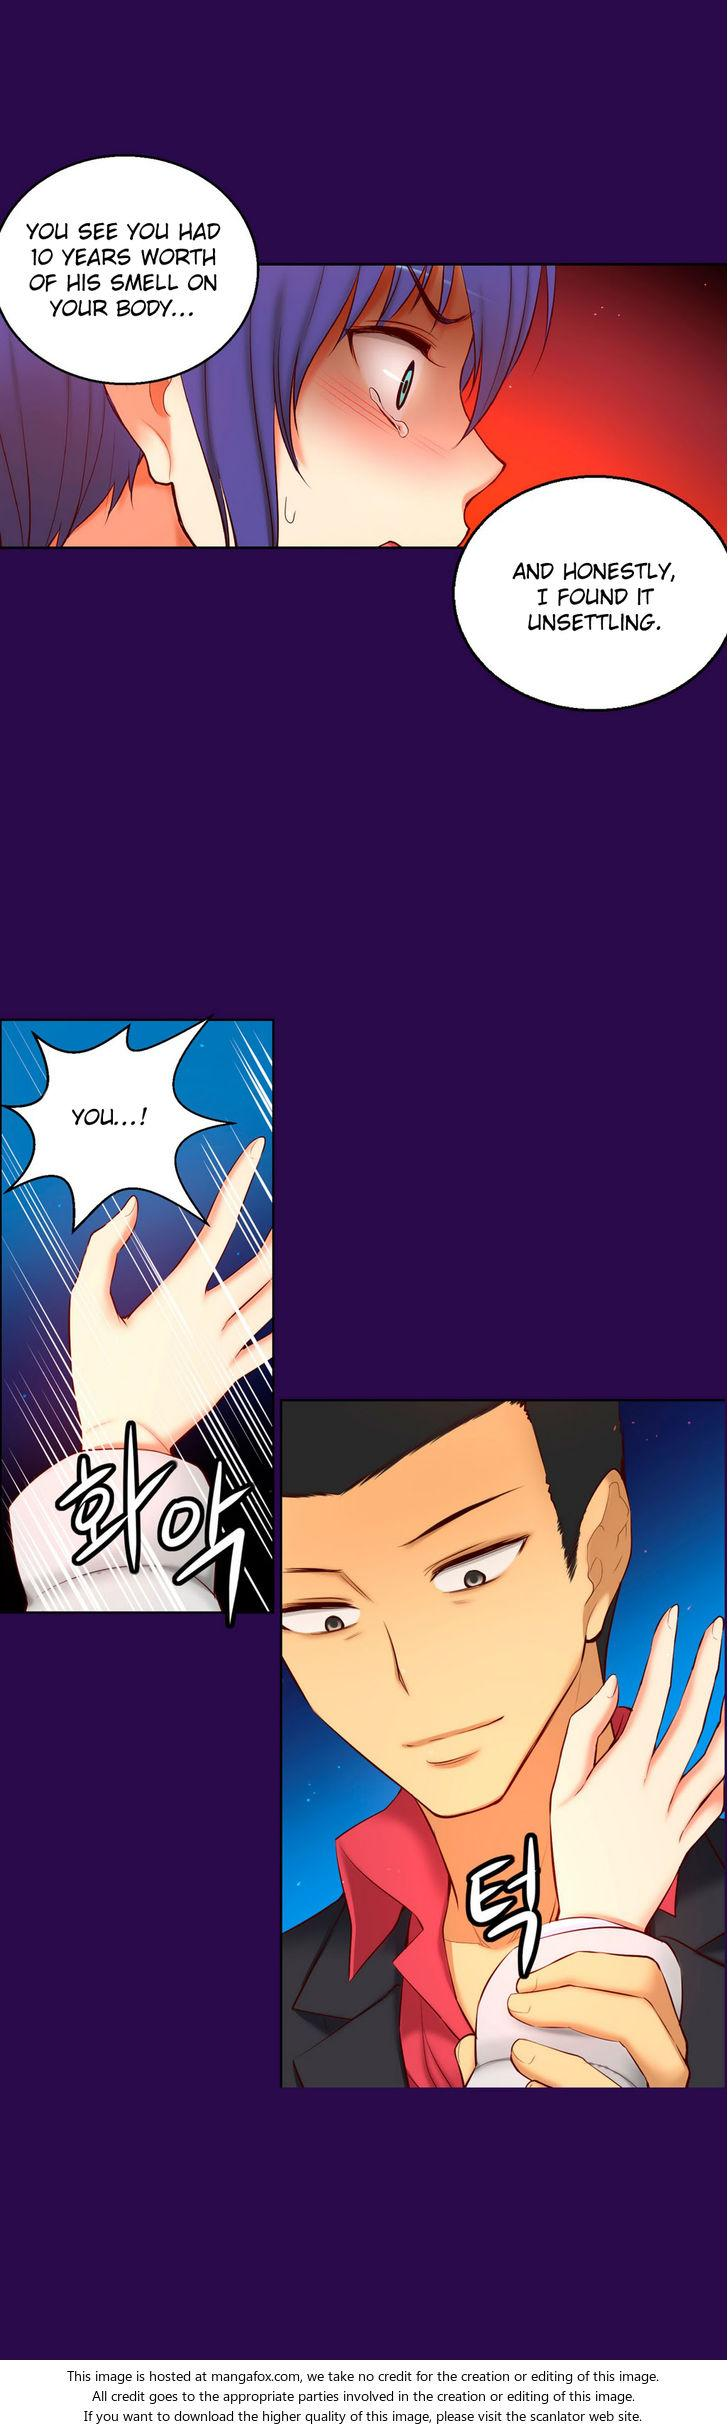 [Donggul Gom] She is Young (English) Part 1/2 1242